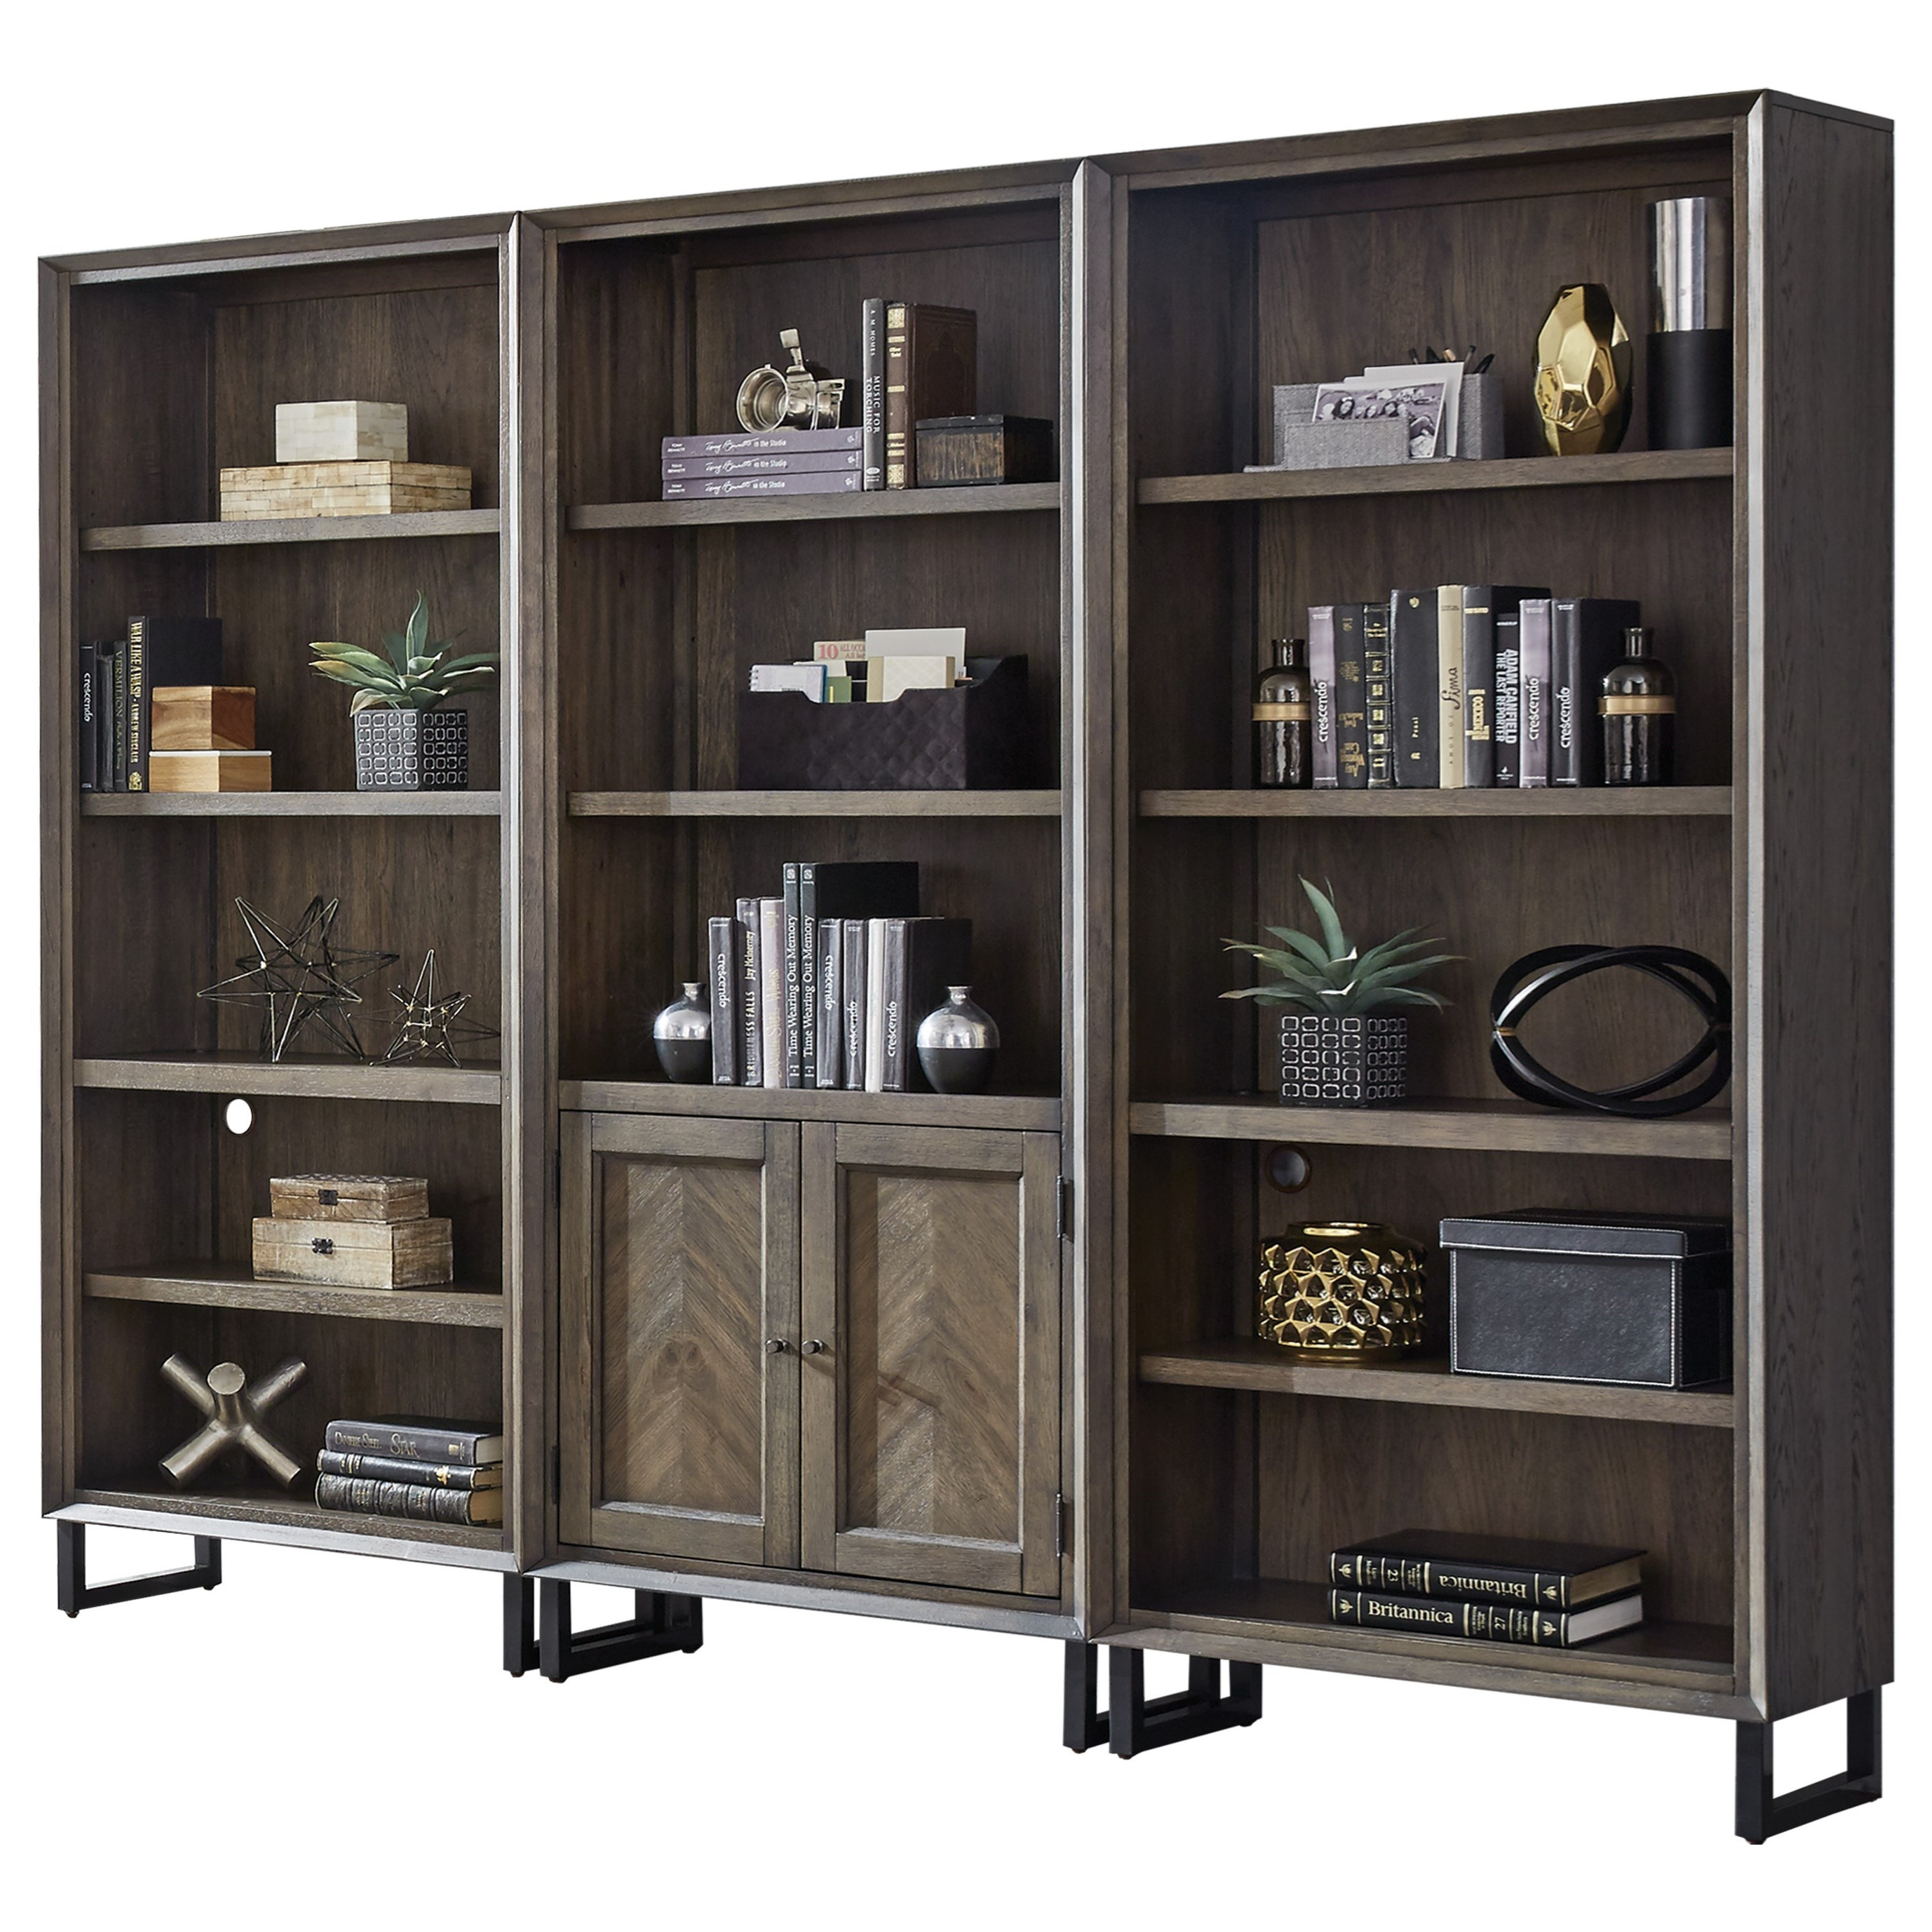 Harper Point Bookcase Set by Aspenhome at Baer's Furniture